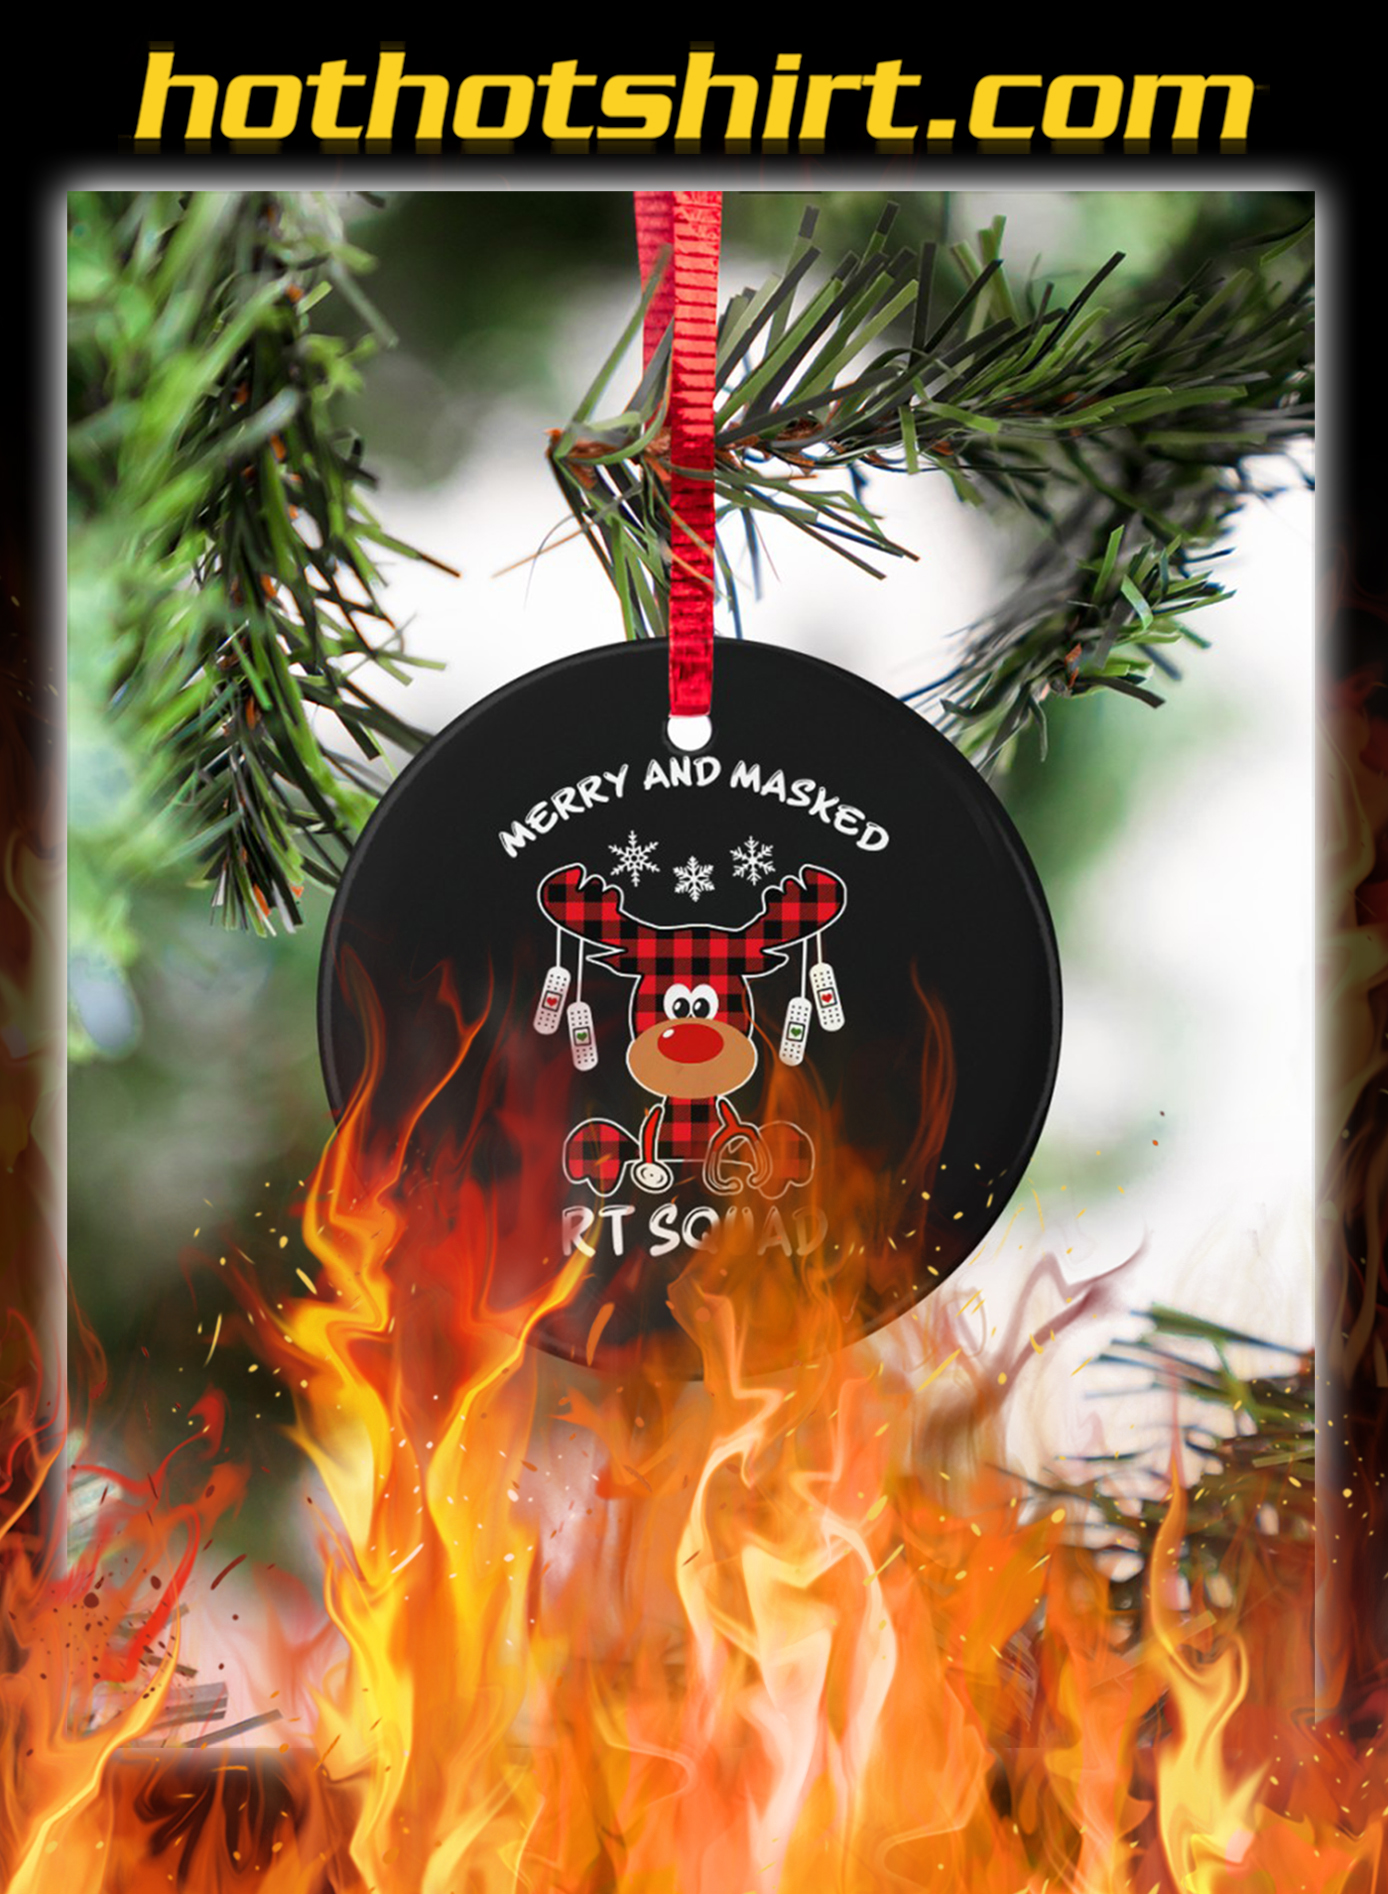 Reindeer Merry and masked rt squad ornaments- pic 1